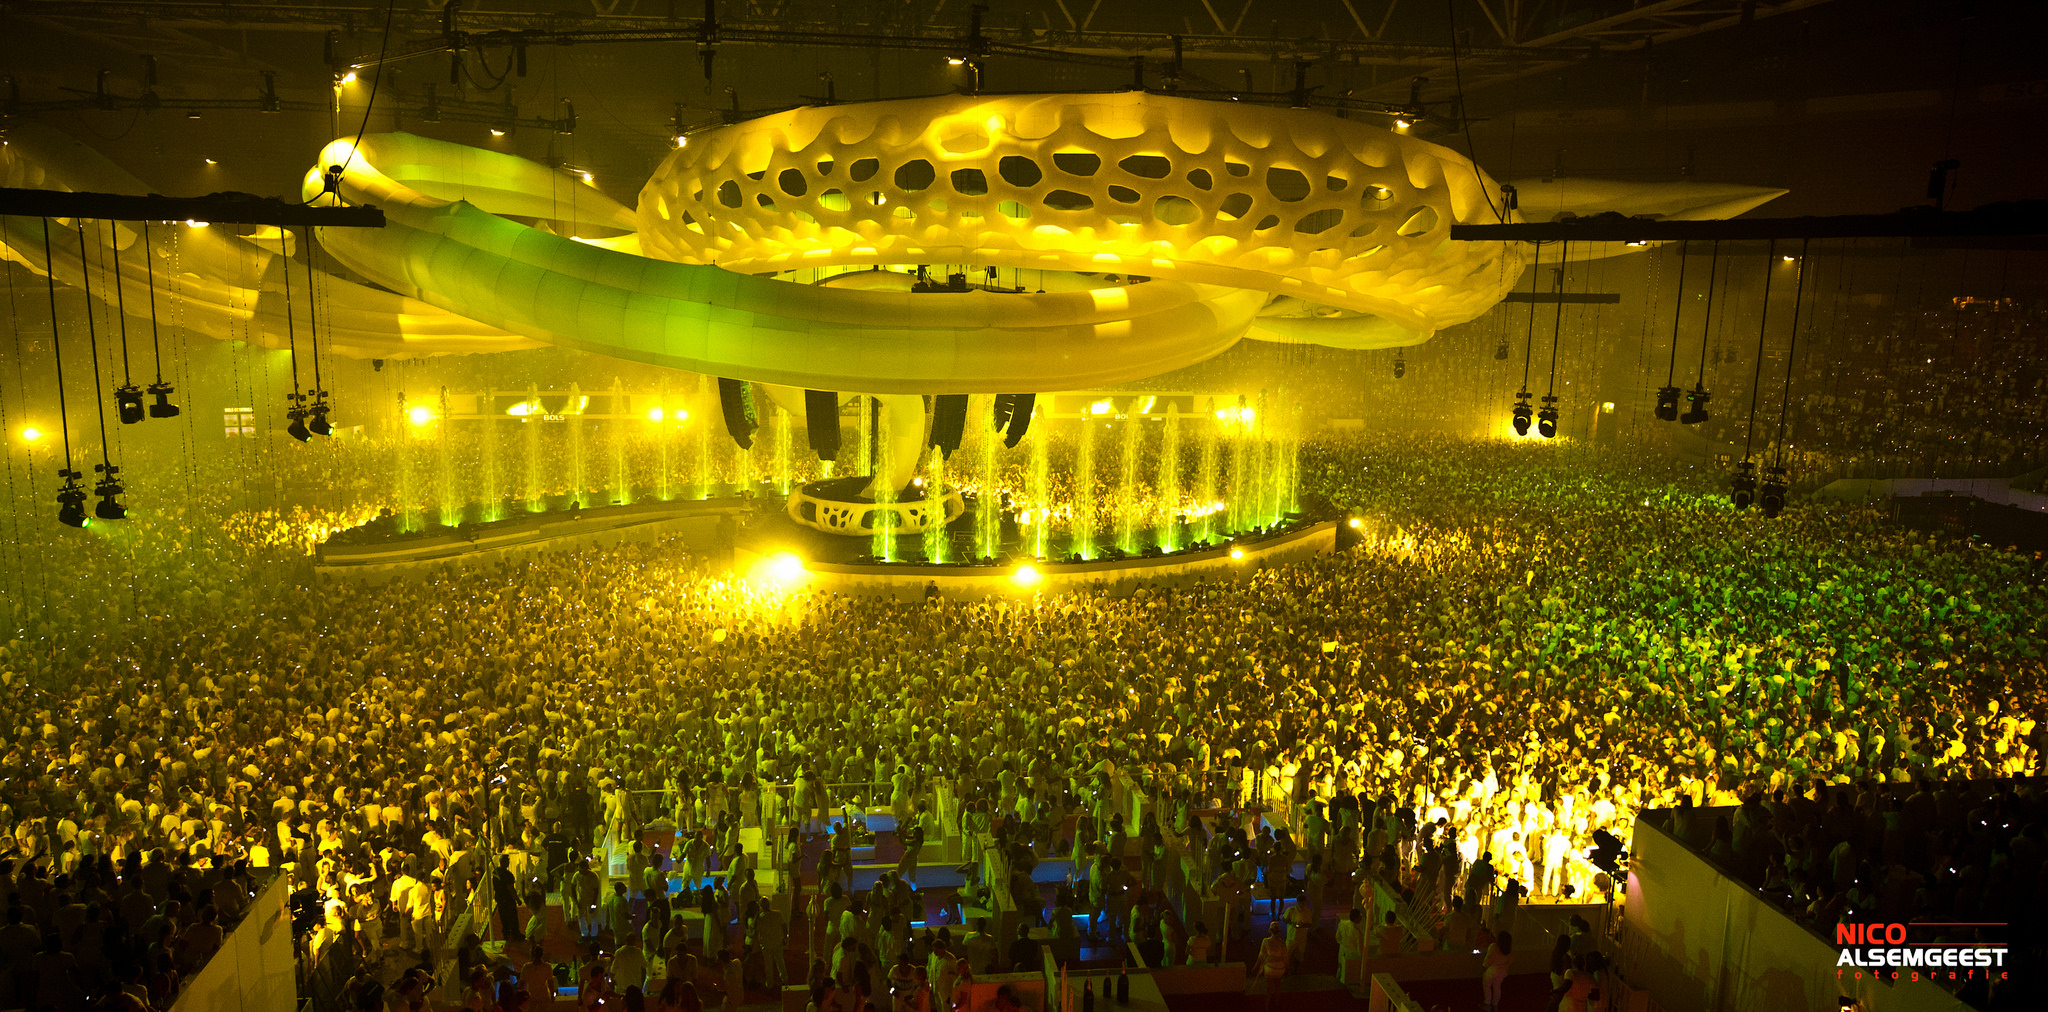 Sensation overview